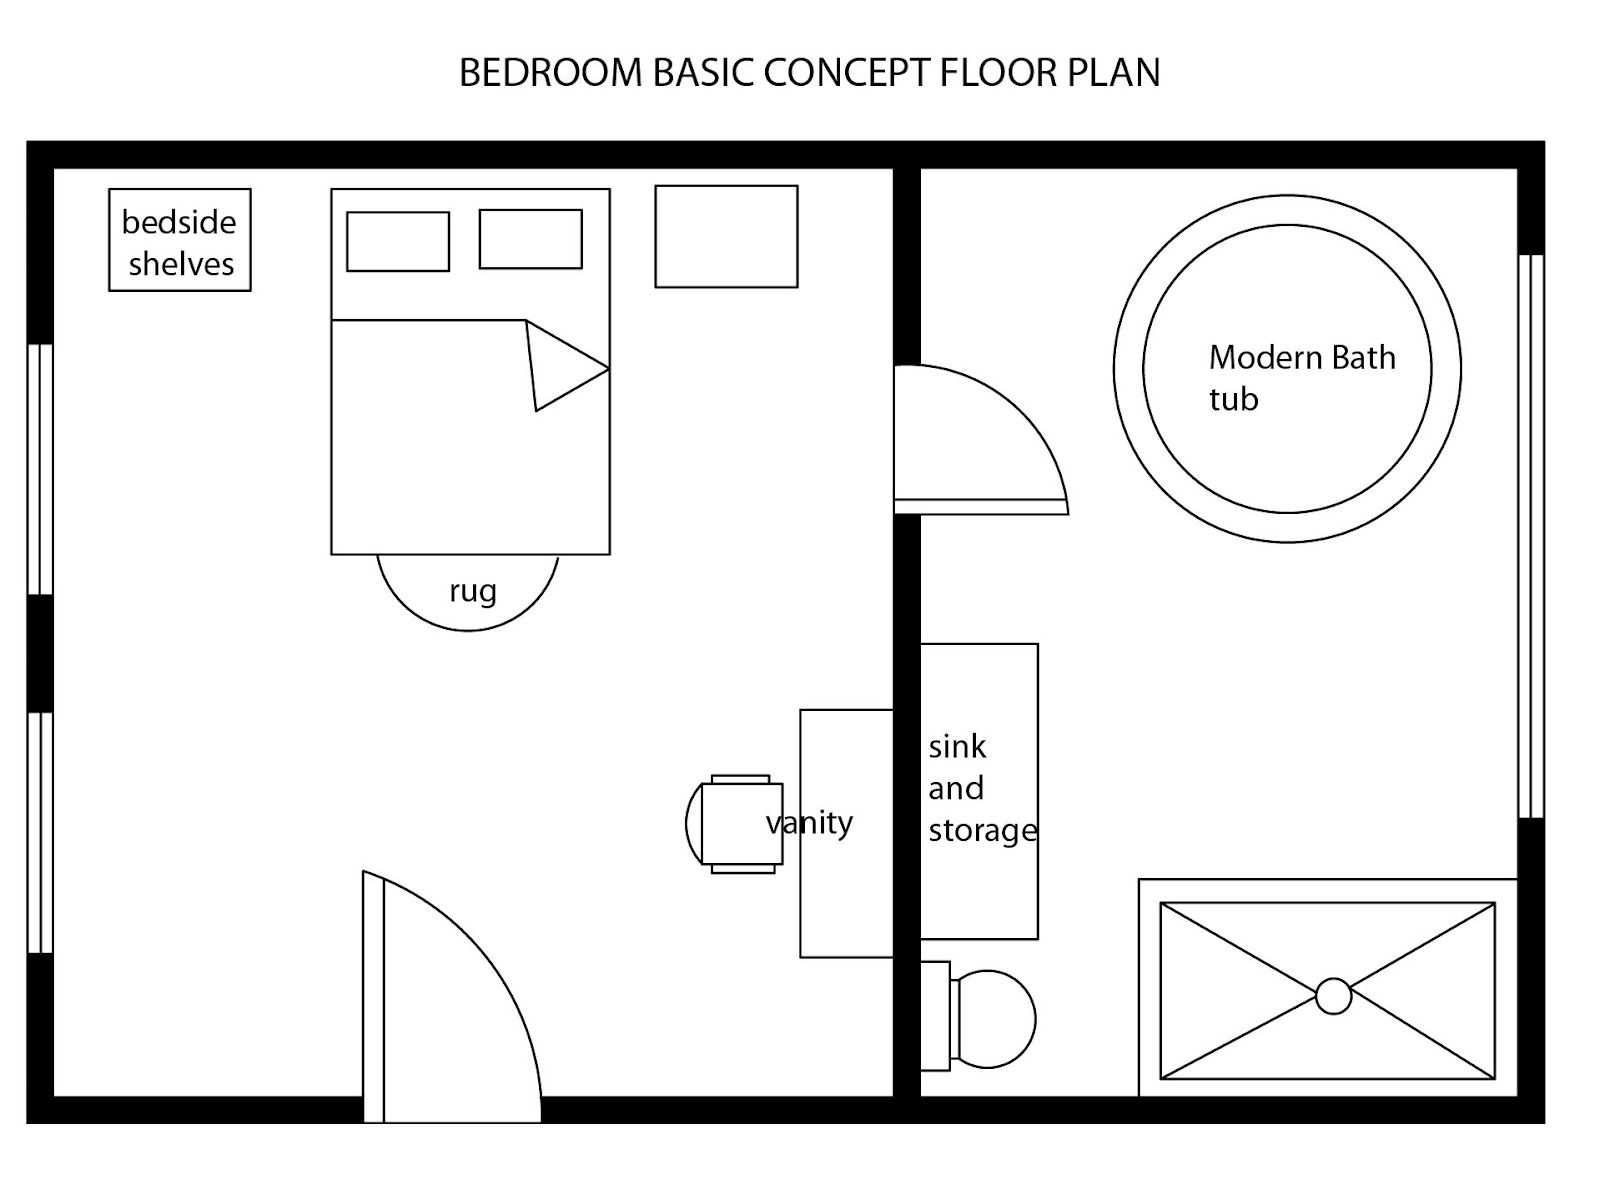 simple 1 bedroom floor plans | design ideas 2017-2018 | Pinterest ...